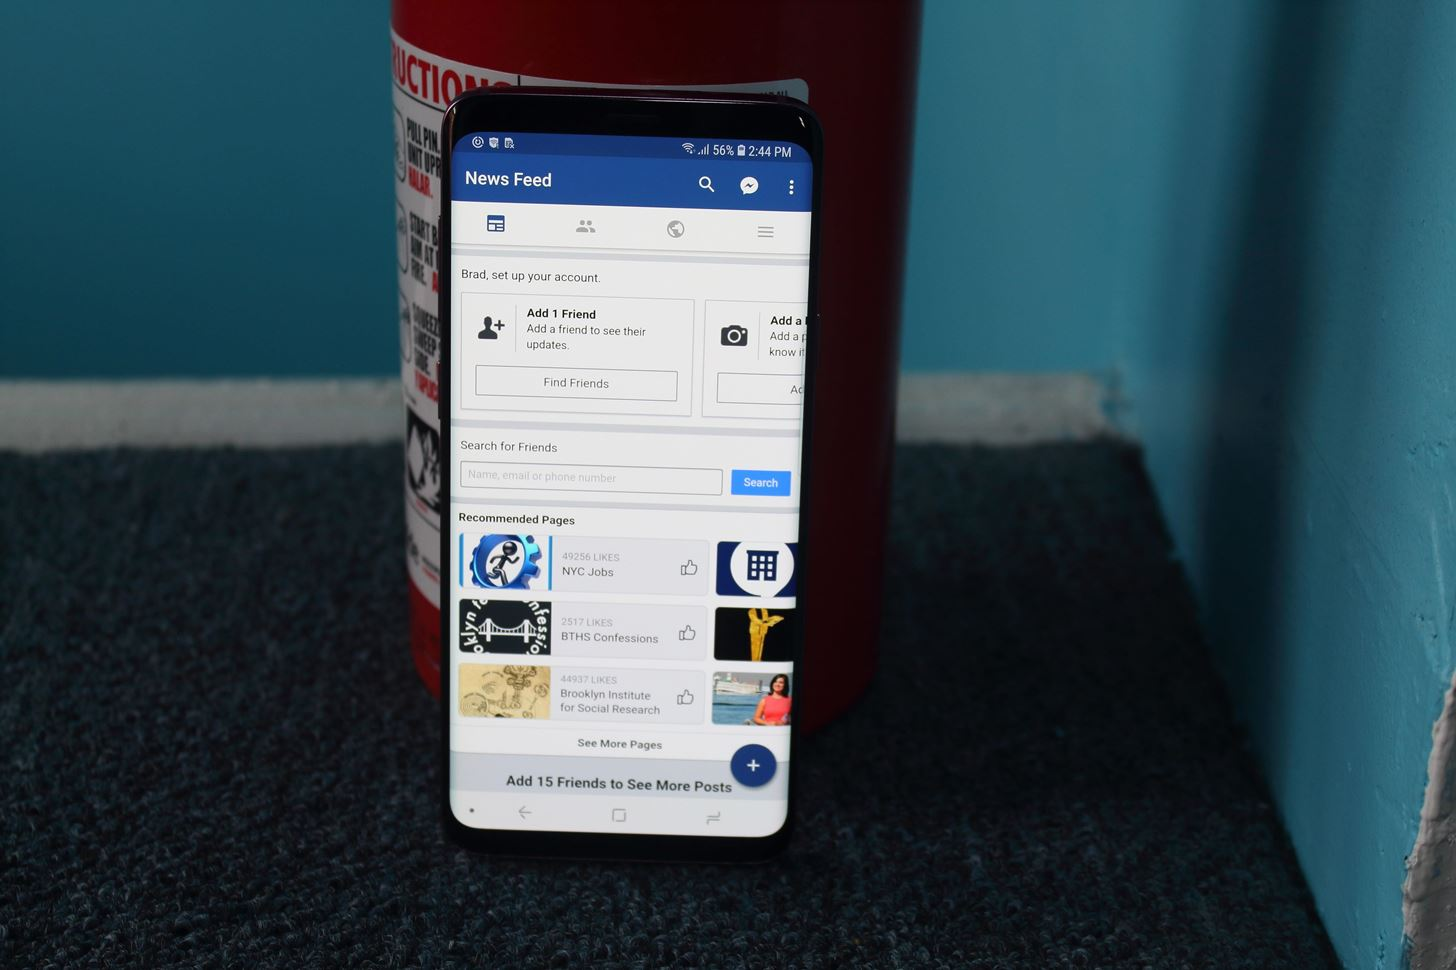 Samsung, not Apple Represents the Best Social Media Phones here (and we can prove it)